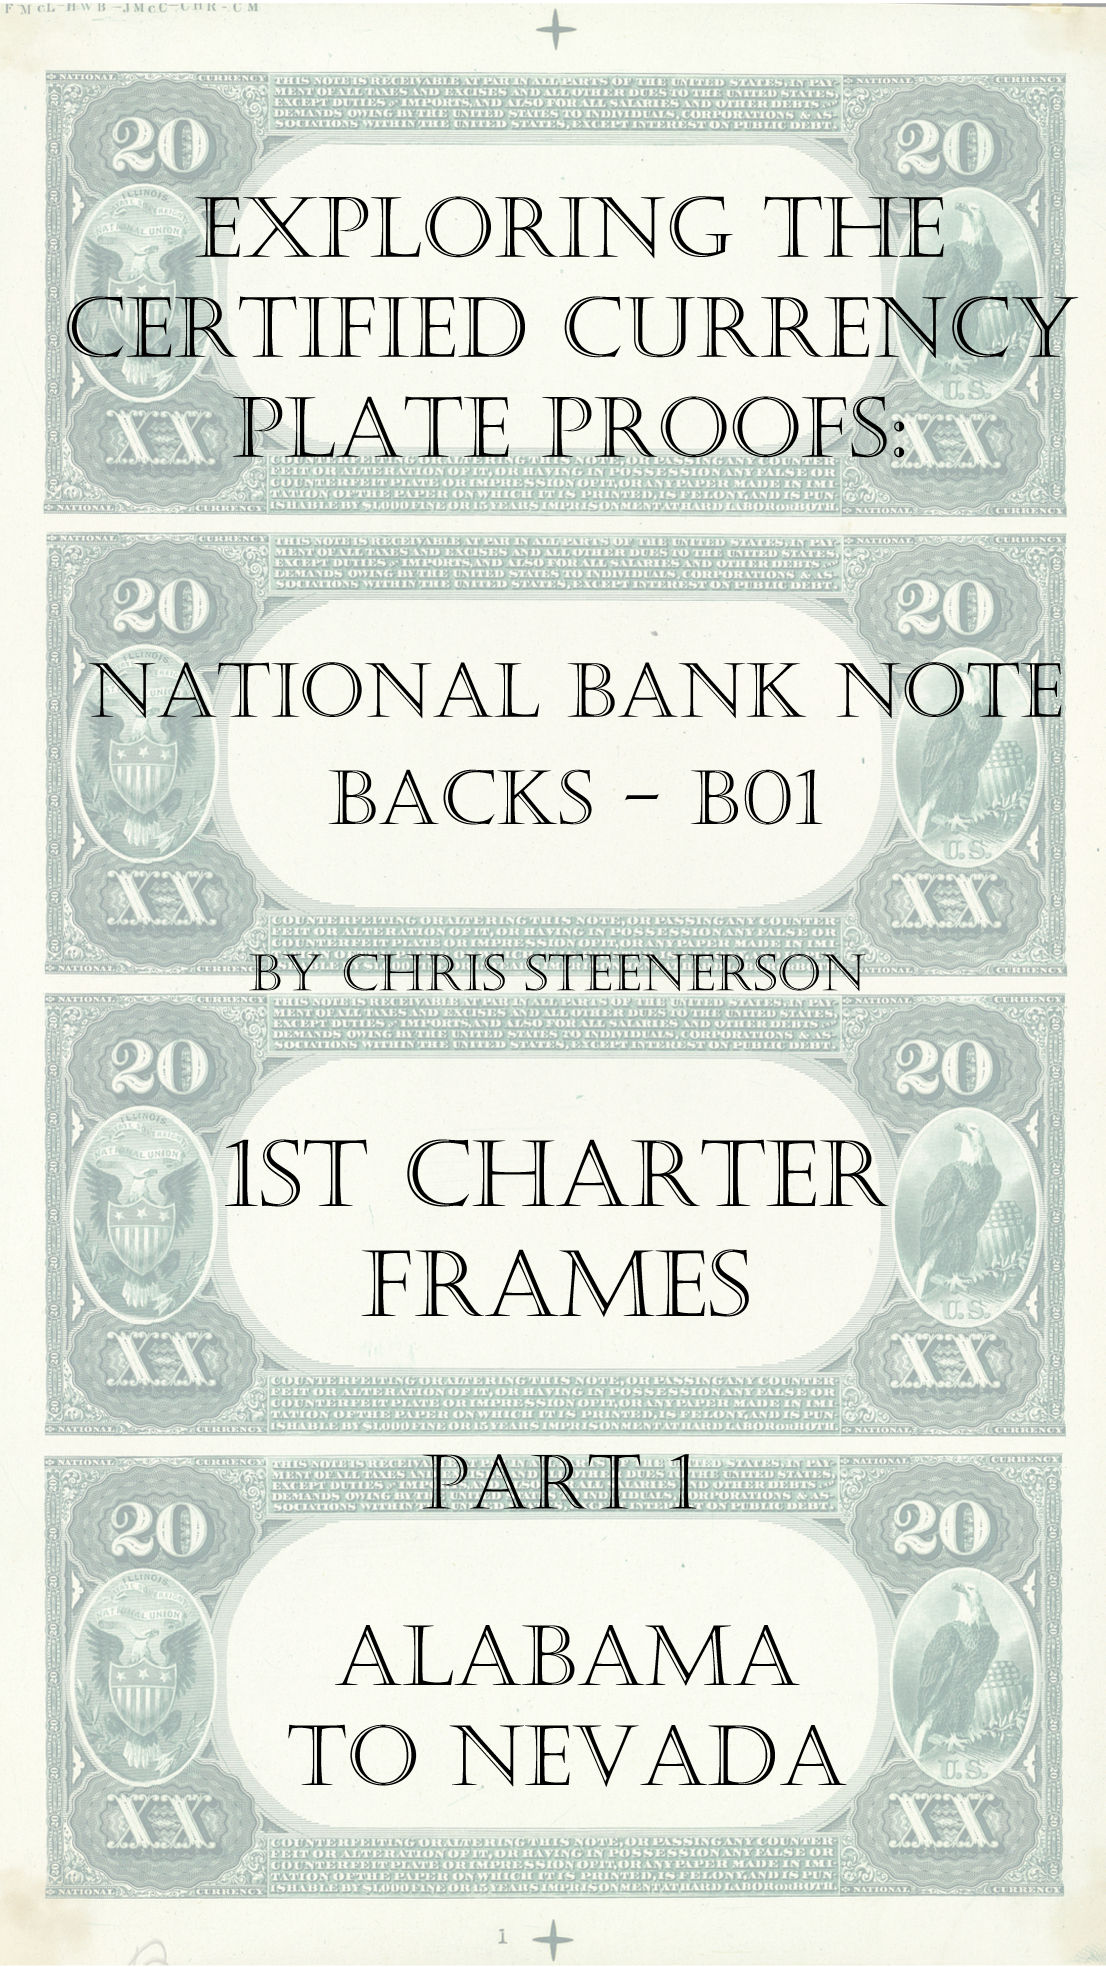 Backs 1st Charter Frames and Vignettes All-States Currency Proofs